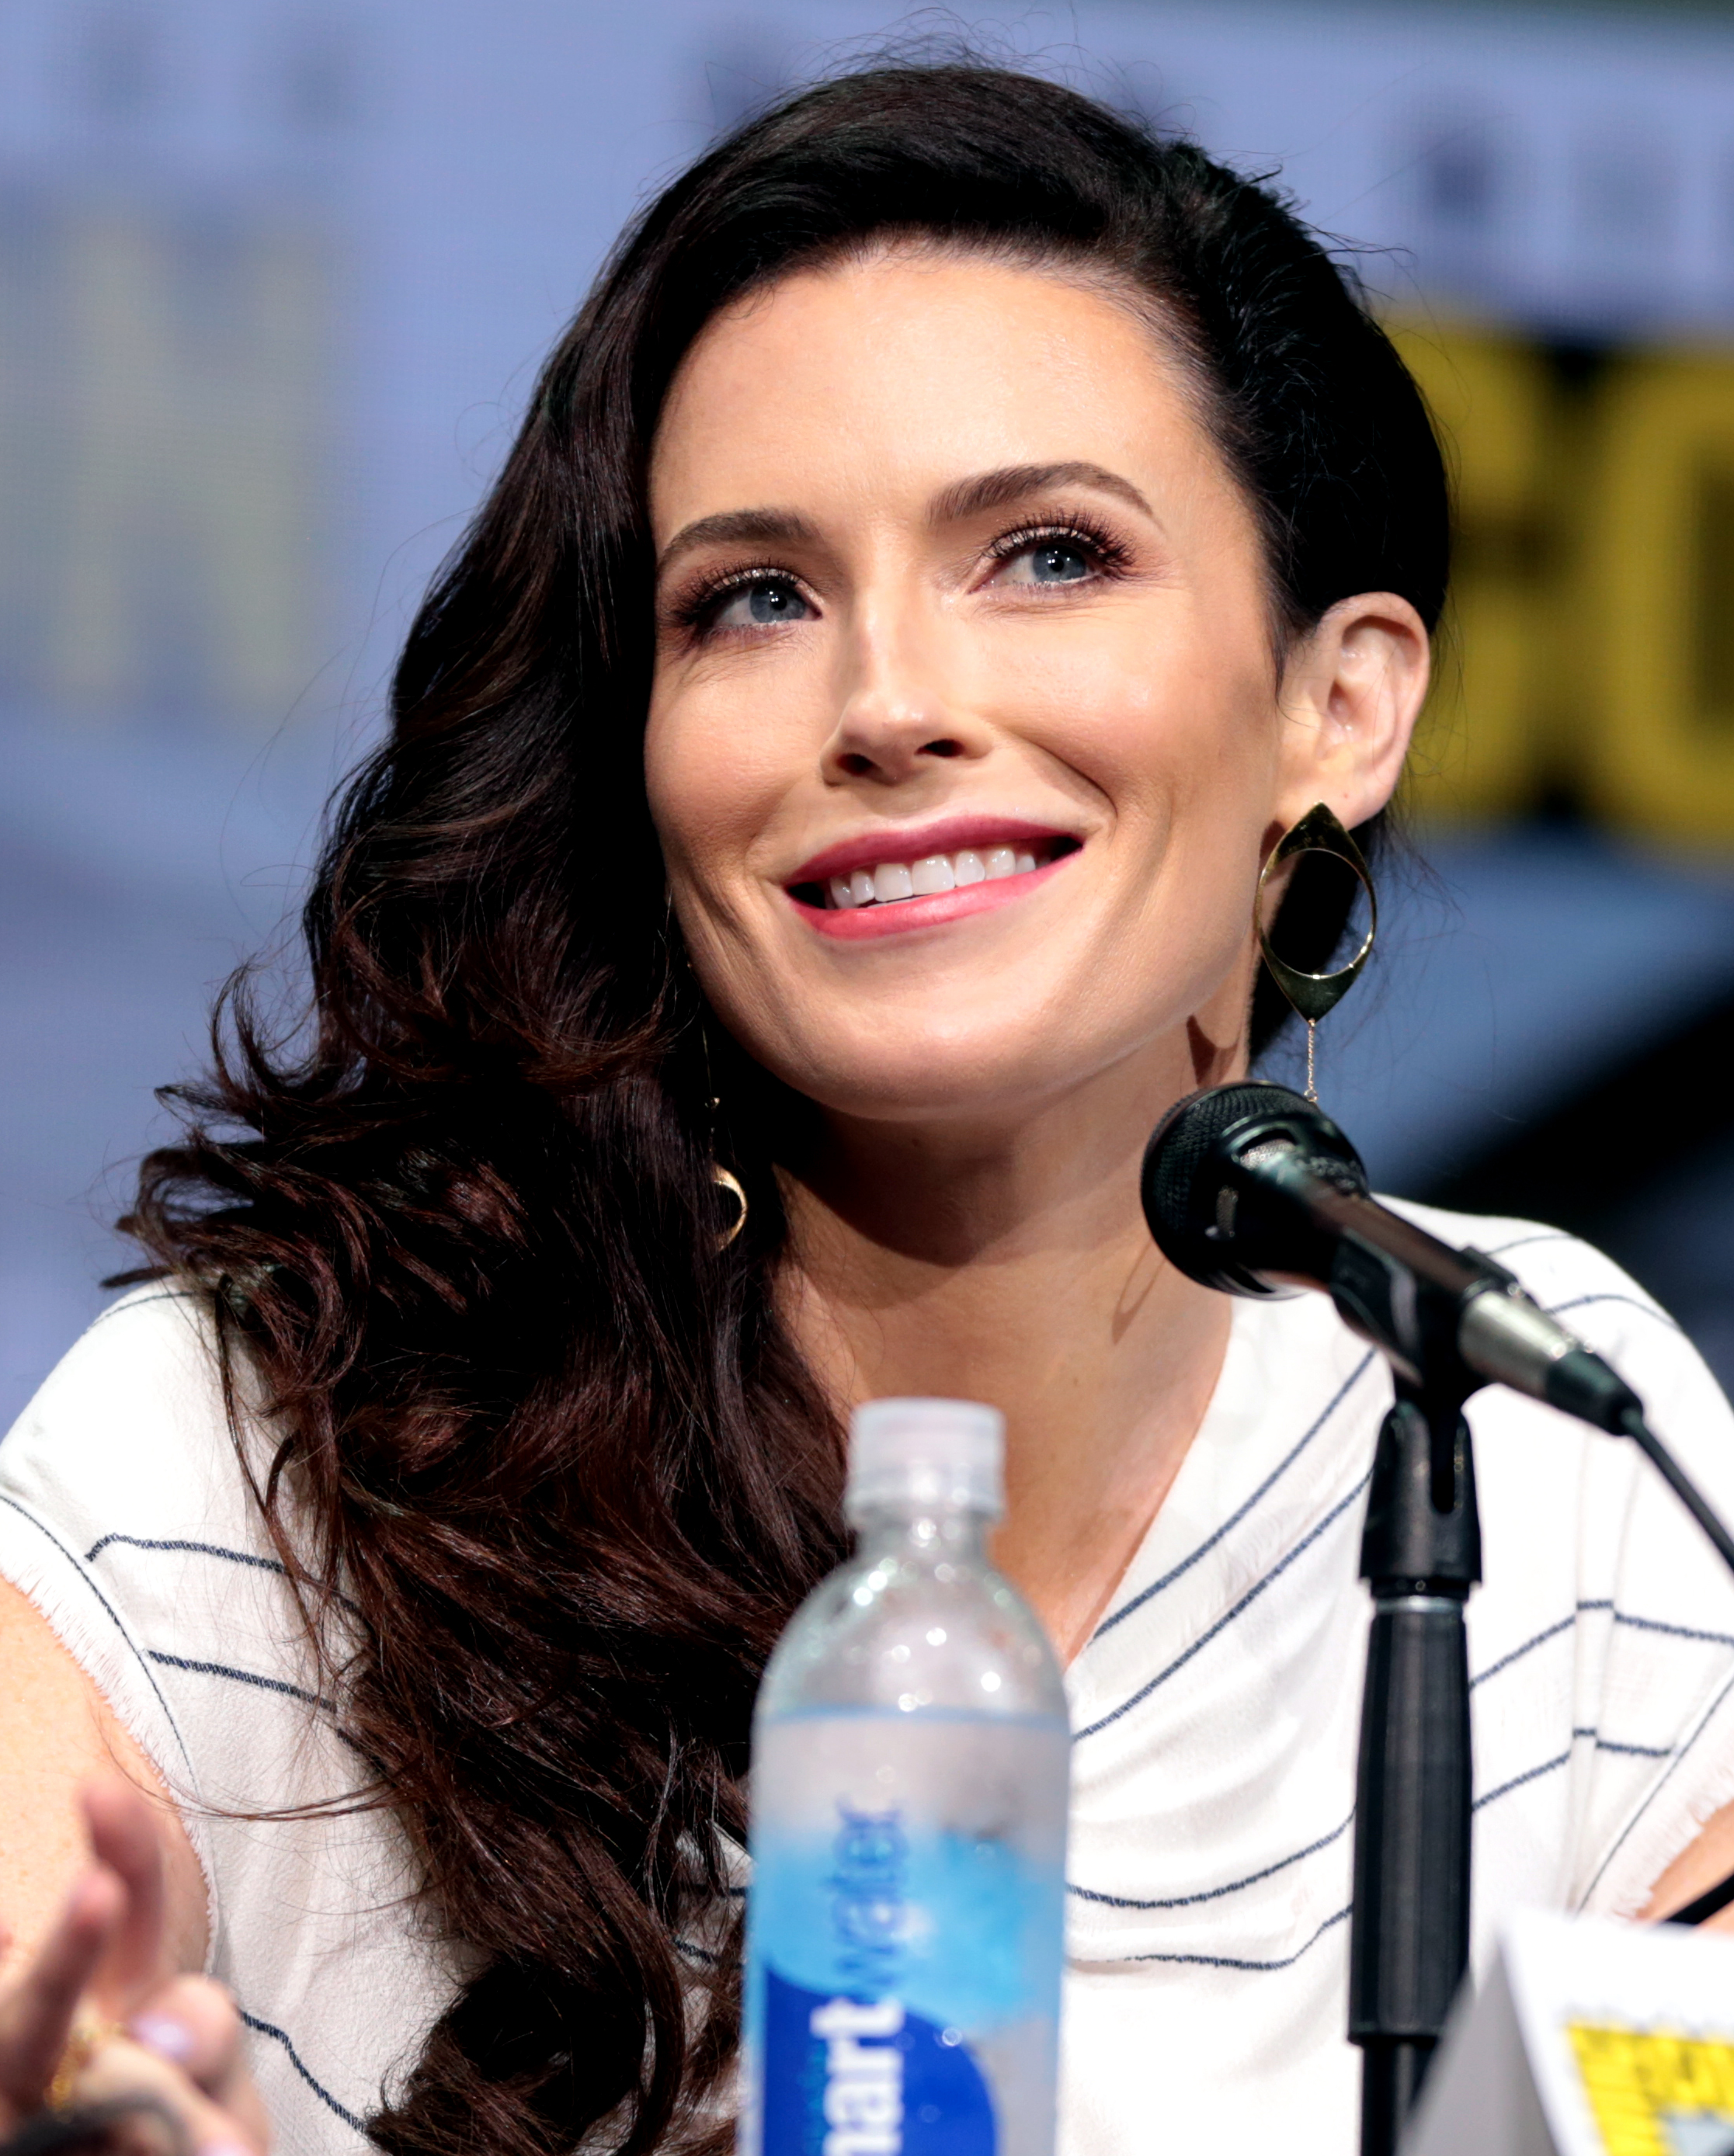 Bridget Regan - Wikipedia